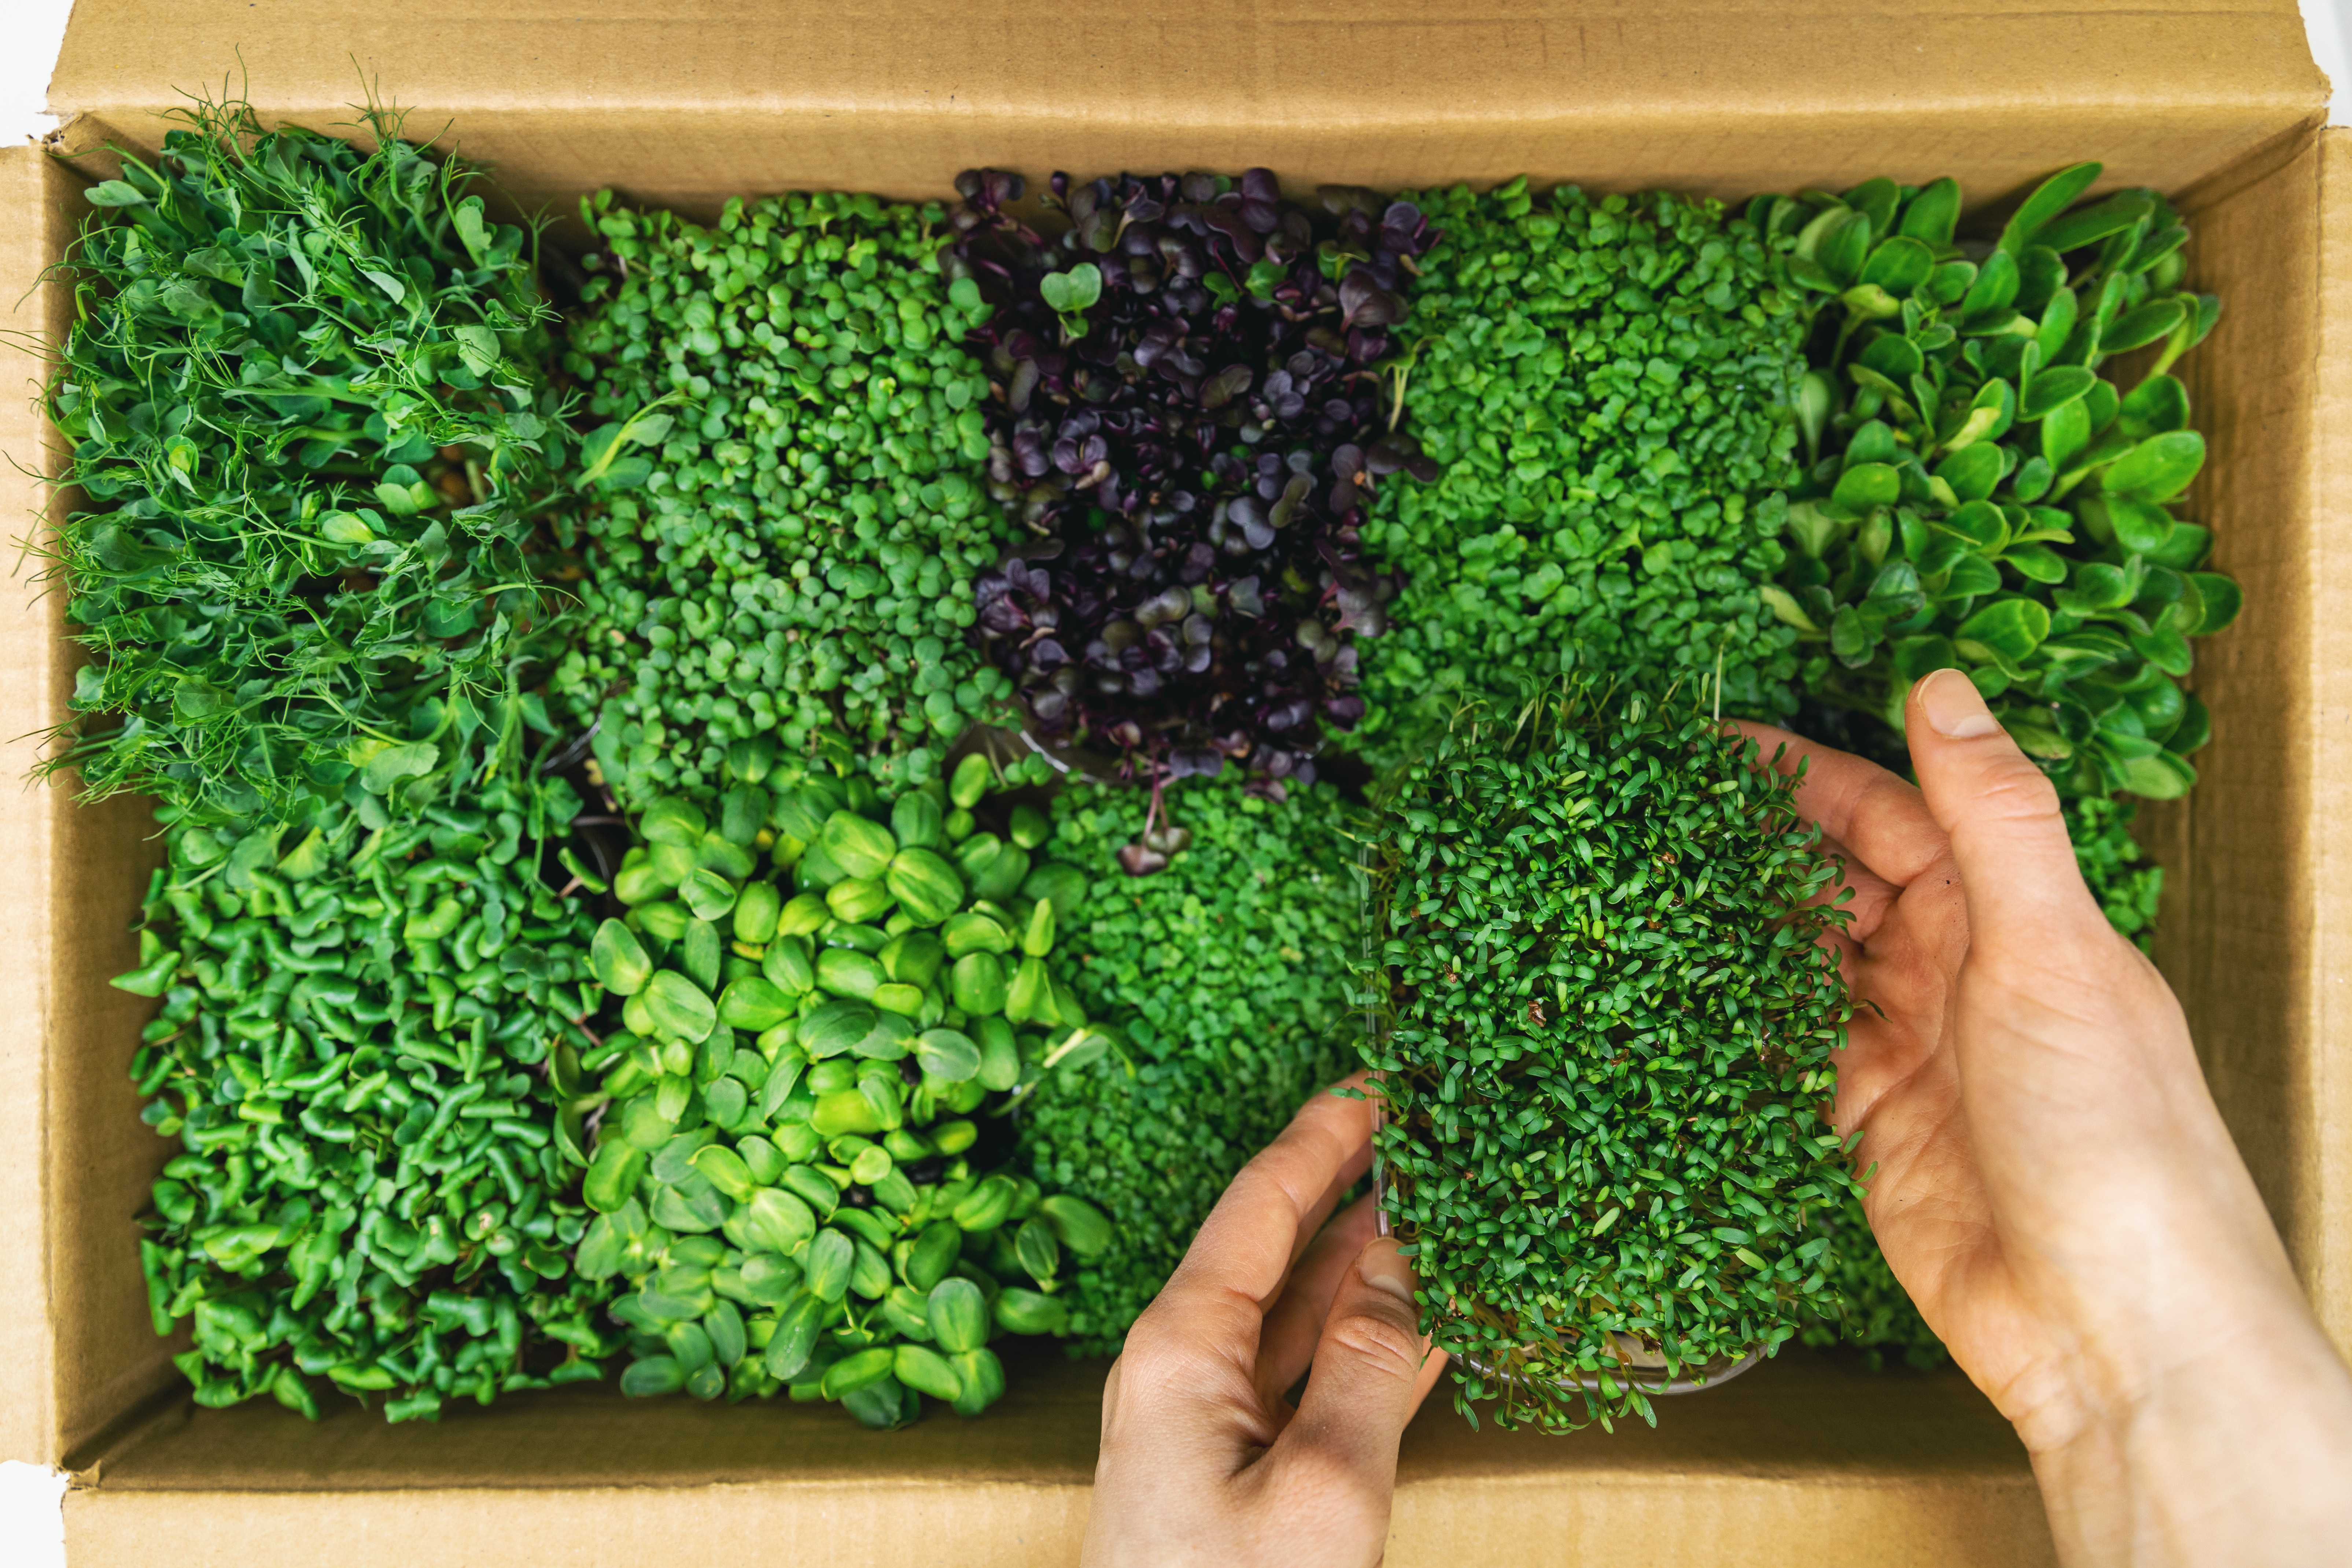 organic raw food - woman take a microgreens container out of cardboard box